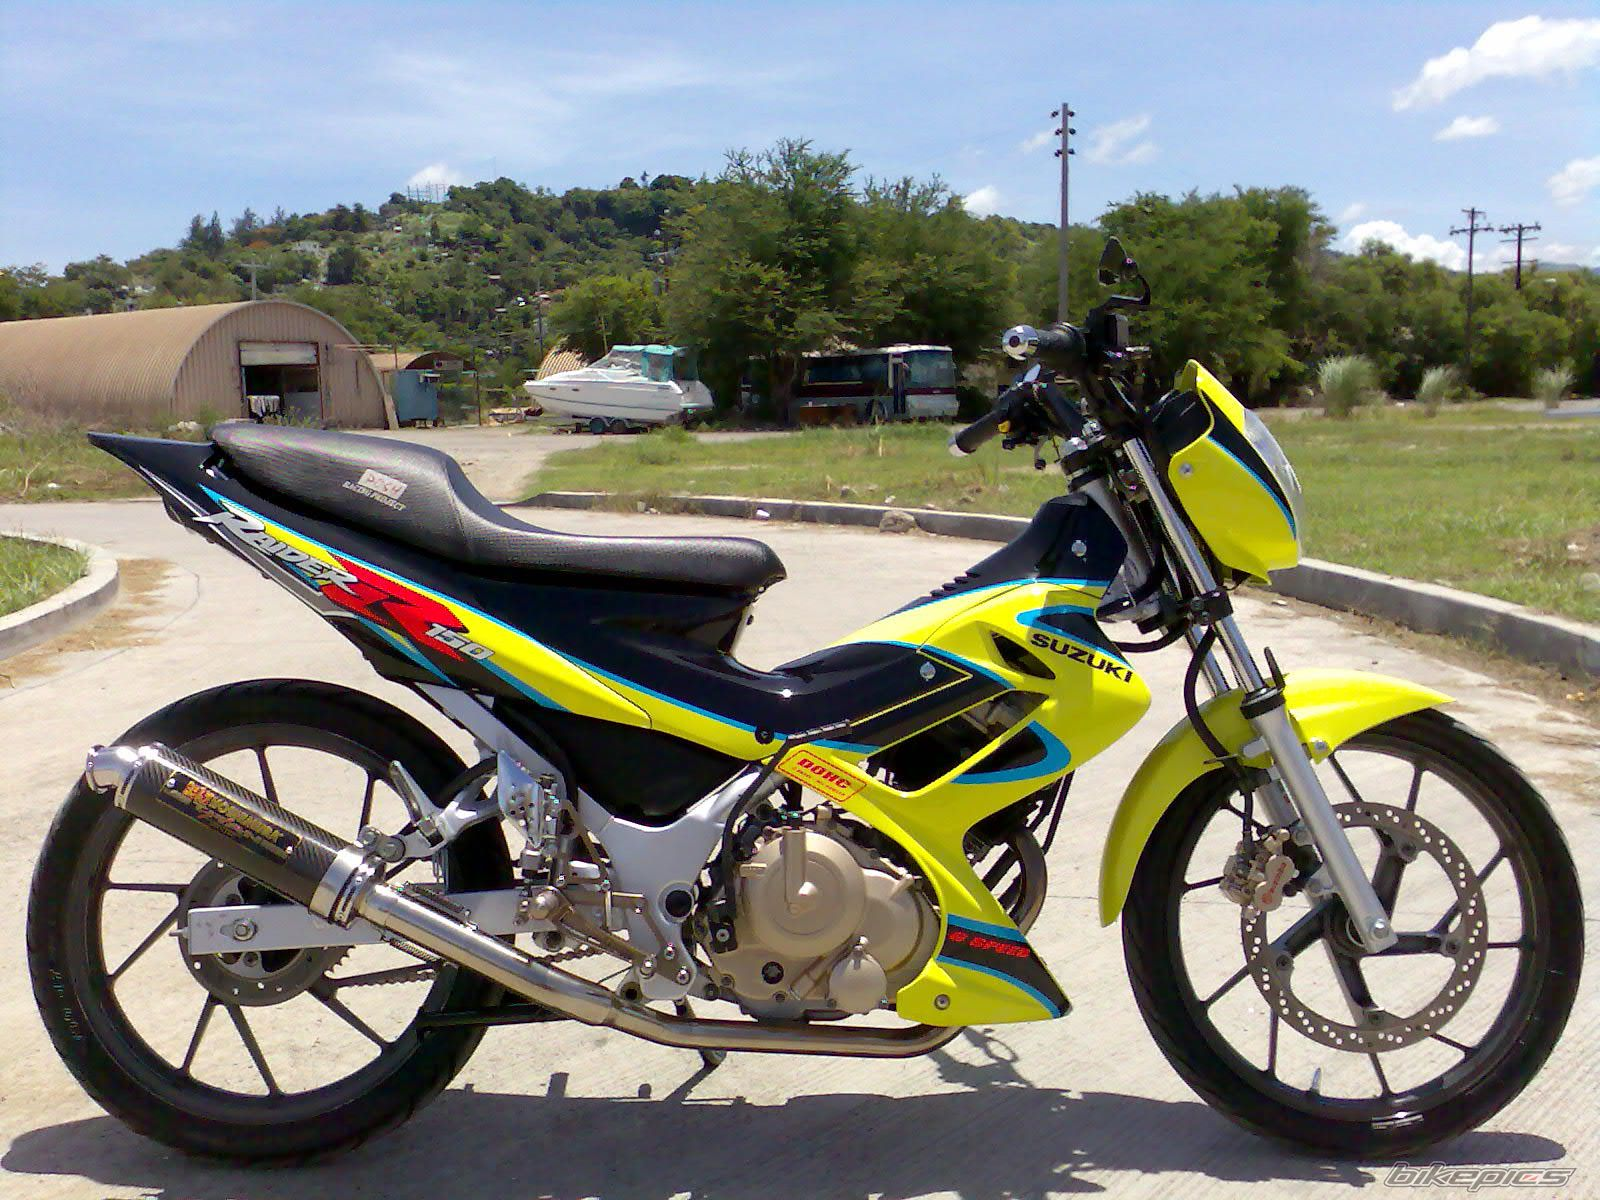 Suzuki Raider Manual Transmission. Street Racer!